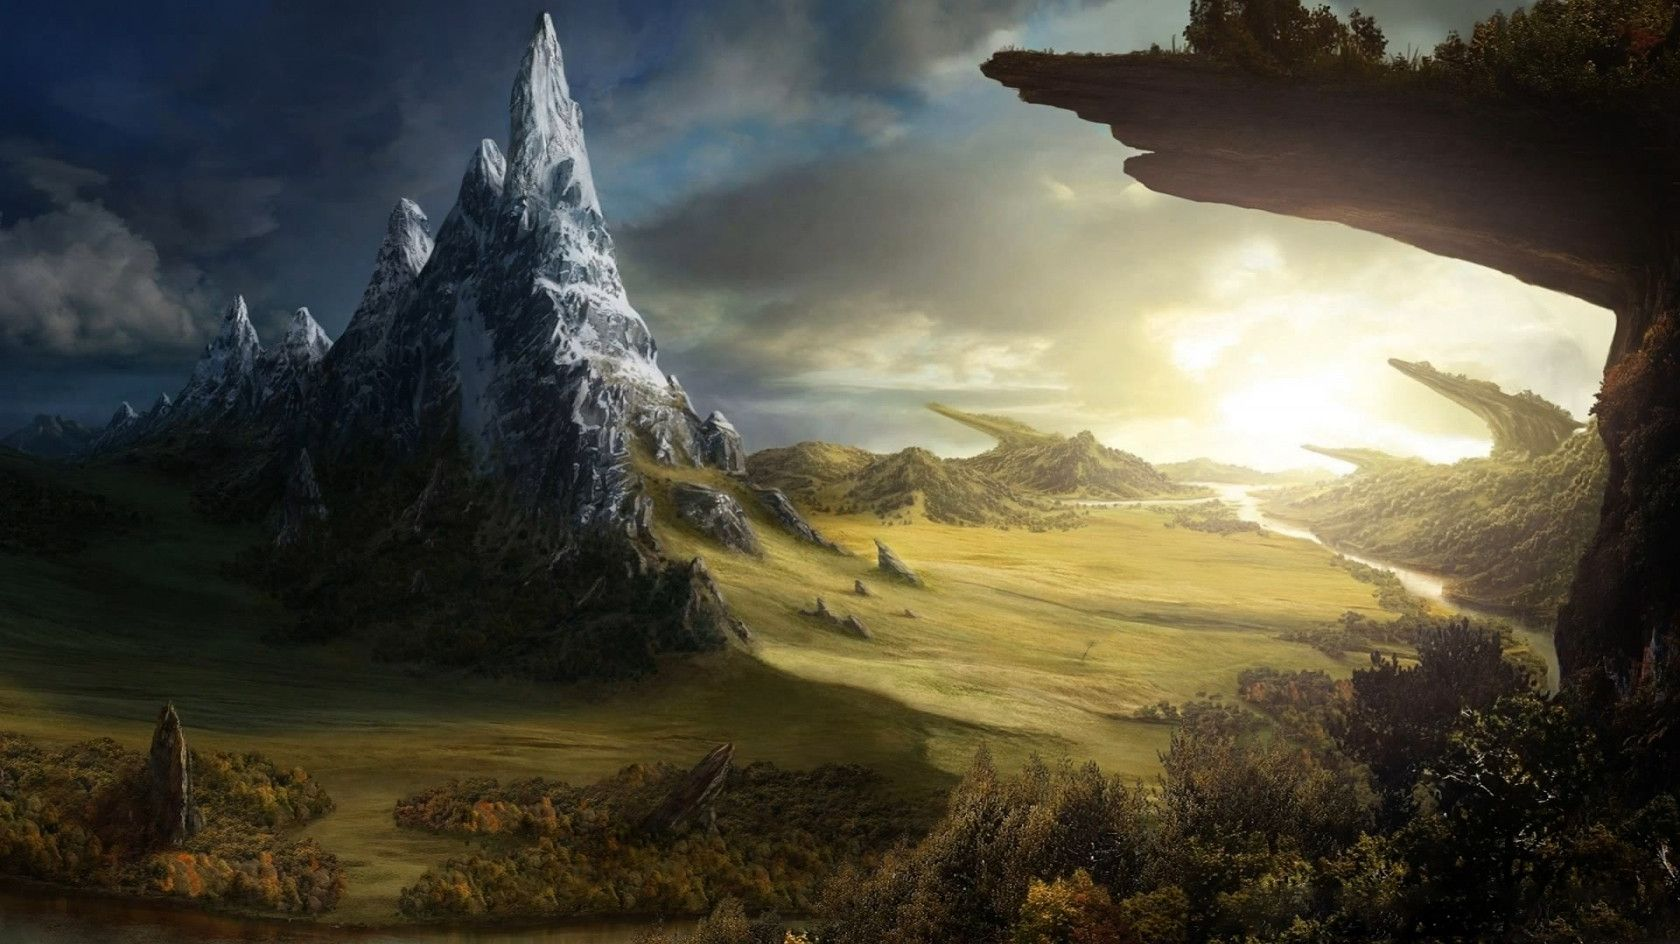 Scenic Fantasy Wallpaper Art Collection Part 4 With Images